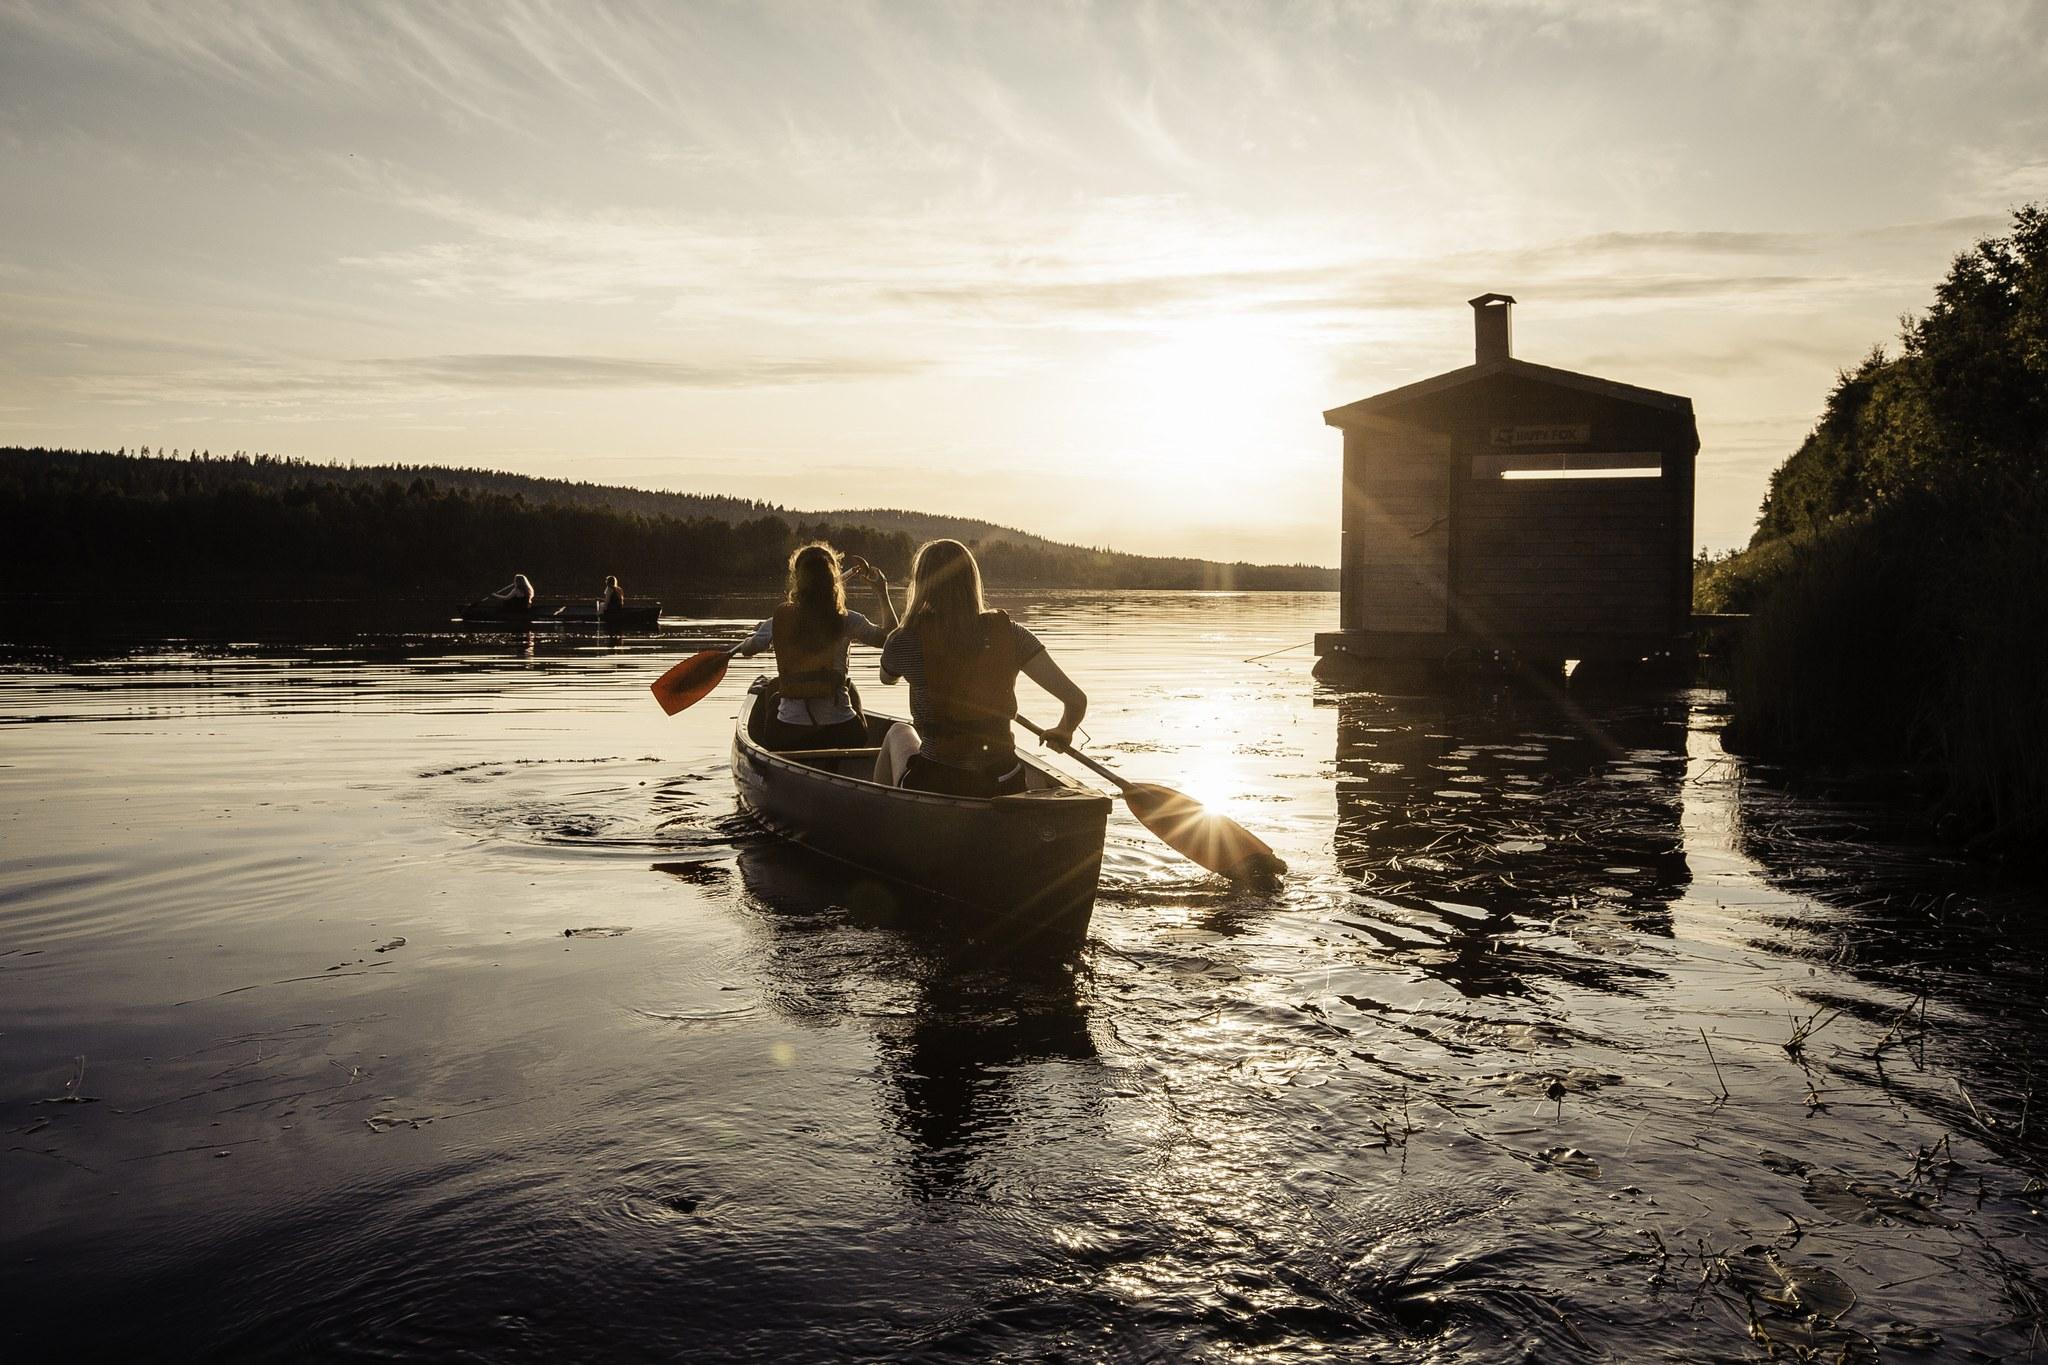 Canoeing with Happy Fox Photo by All About Lapland